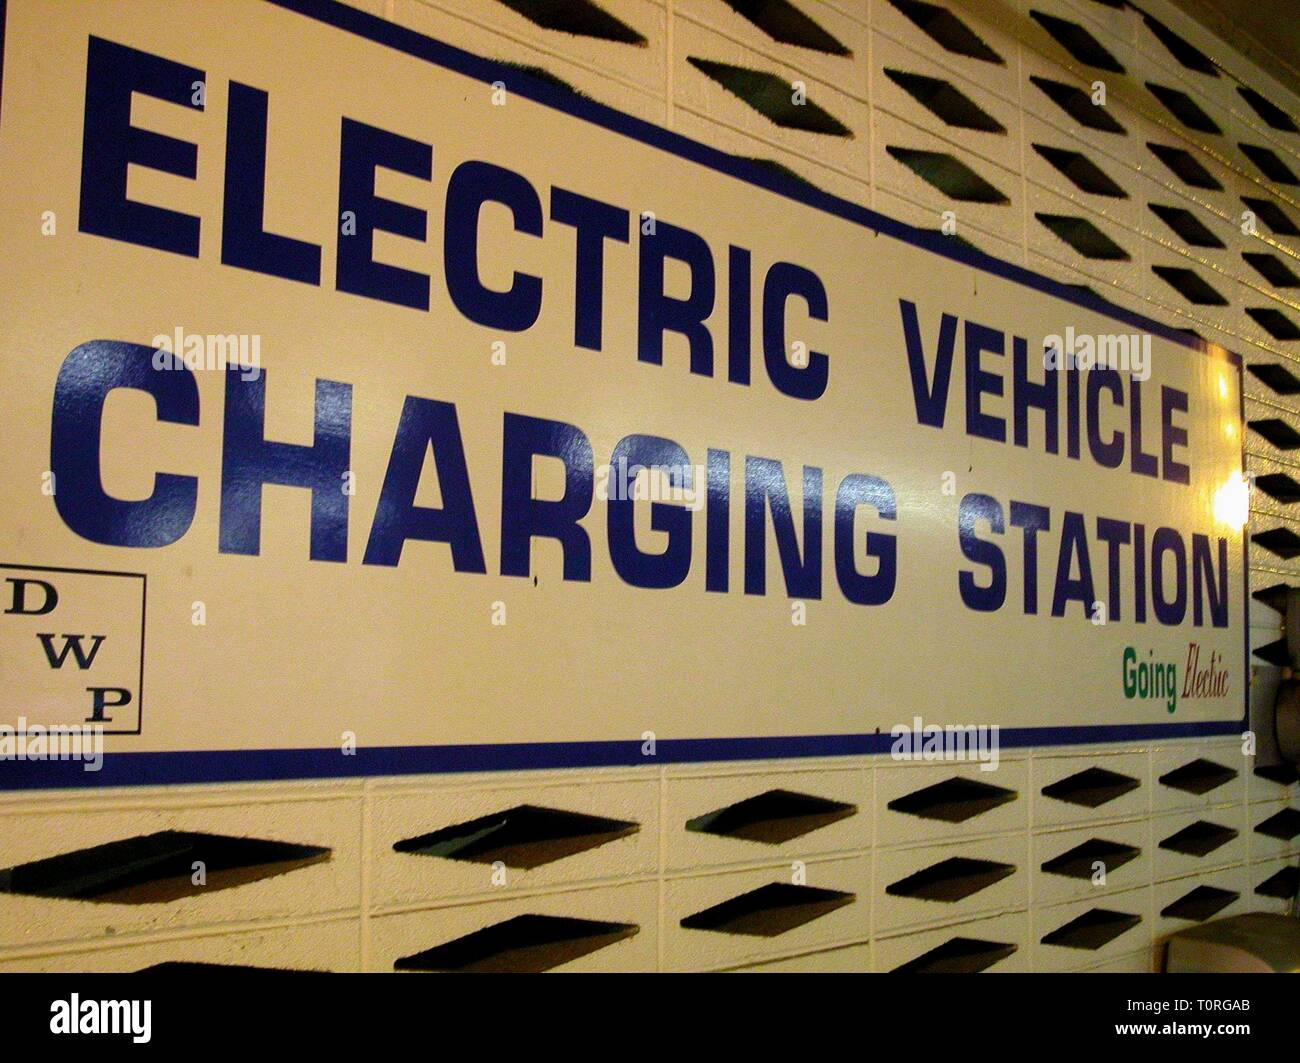 ELECTRIC VEHICLE CHARGING STATION, WHO KILLED THE ELECTRIC CAR?, 2006 - Stock Image